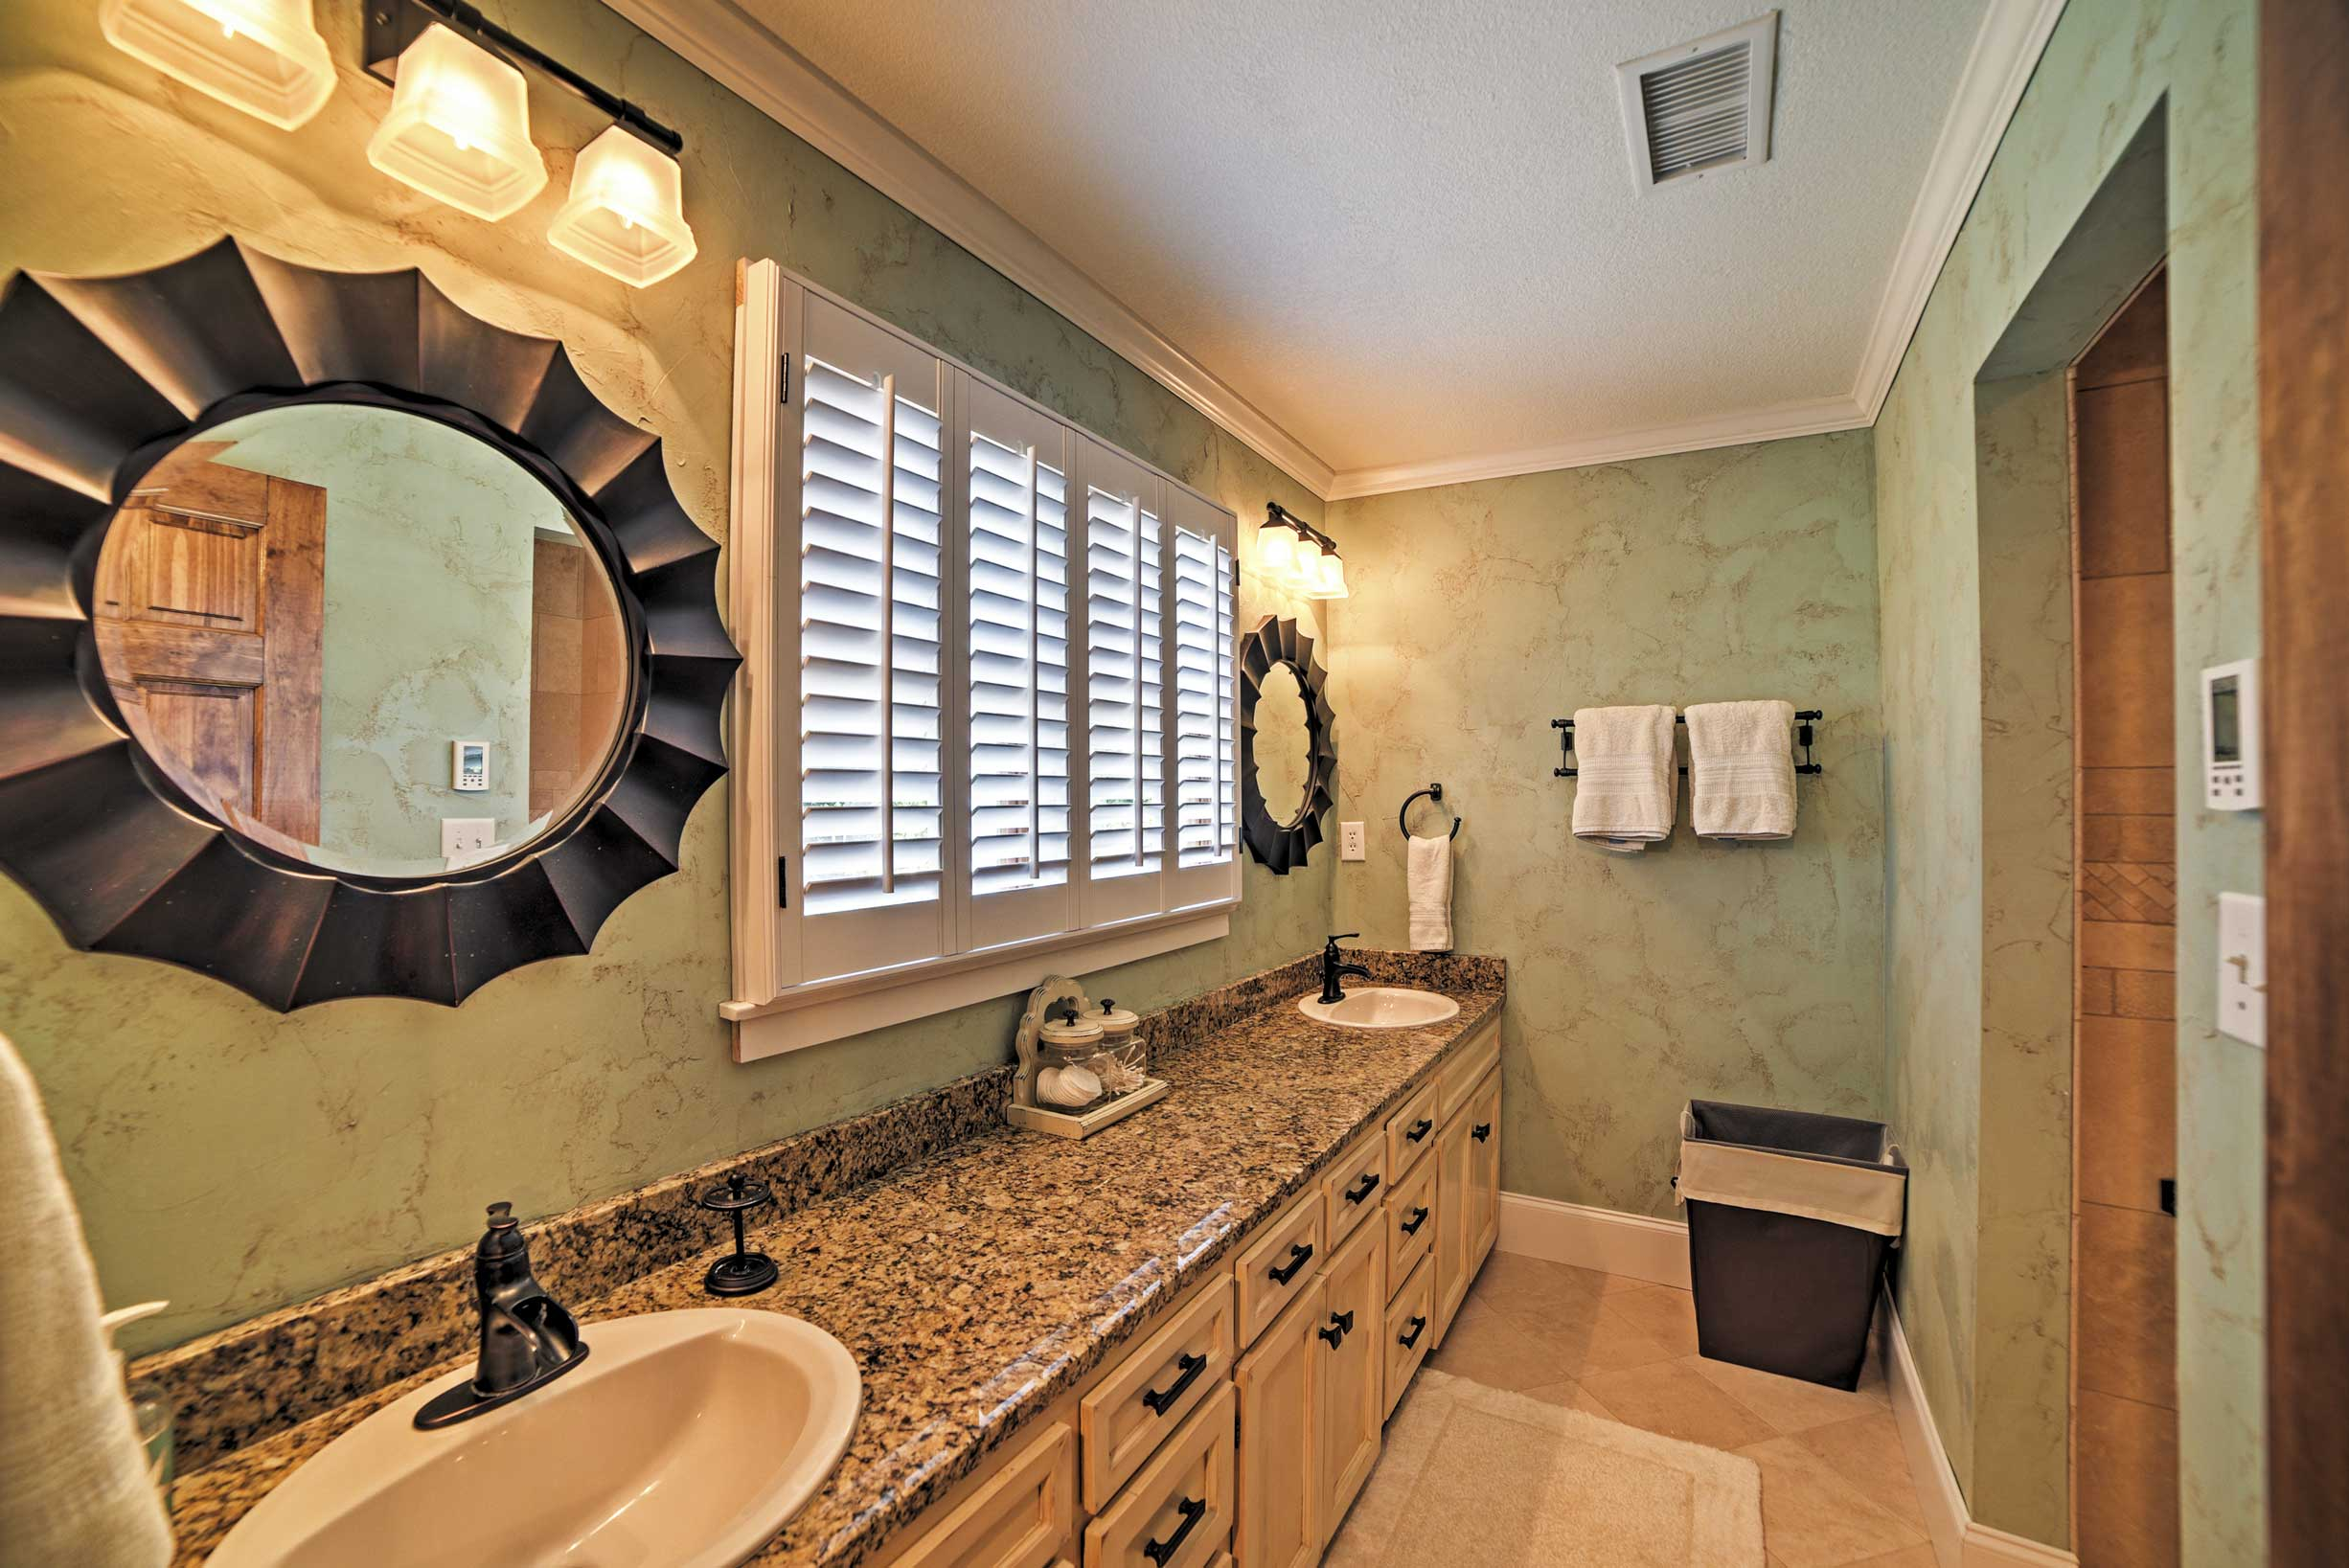 This home features 4.5 bathrooms.